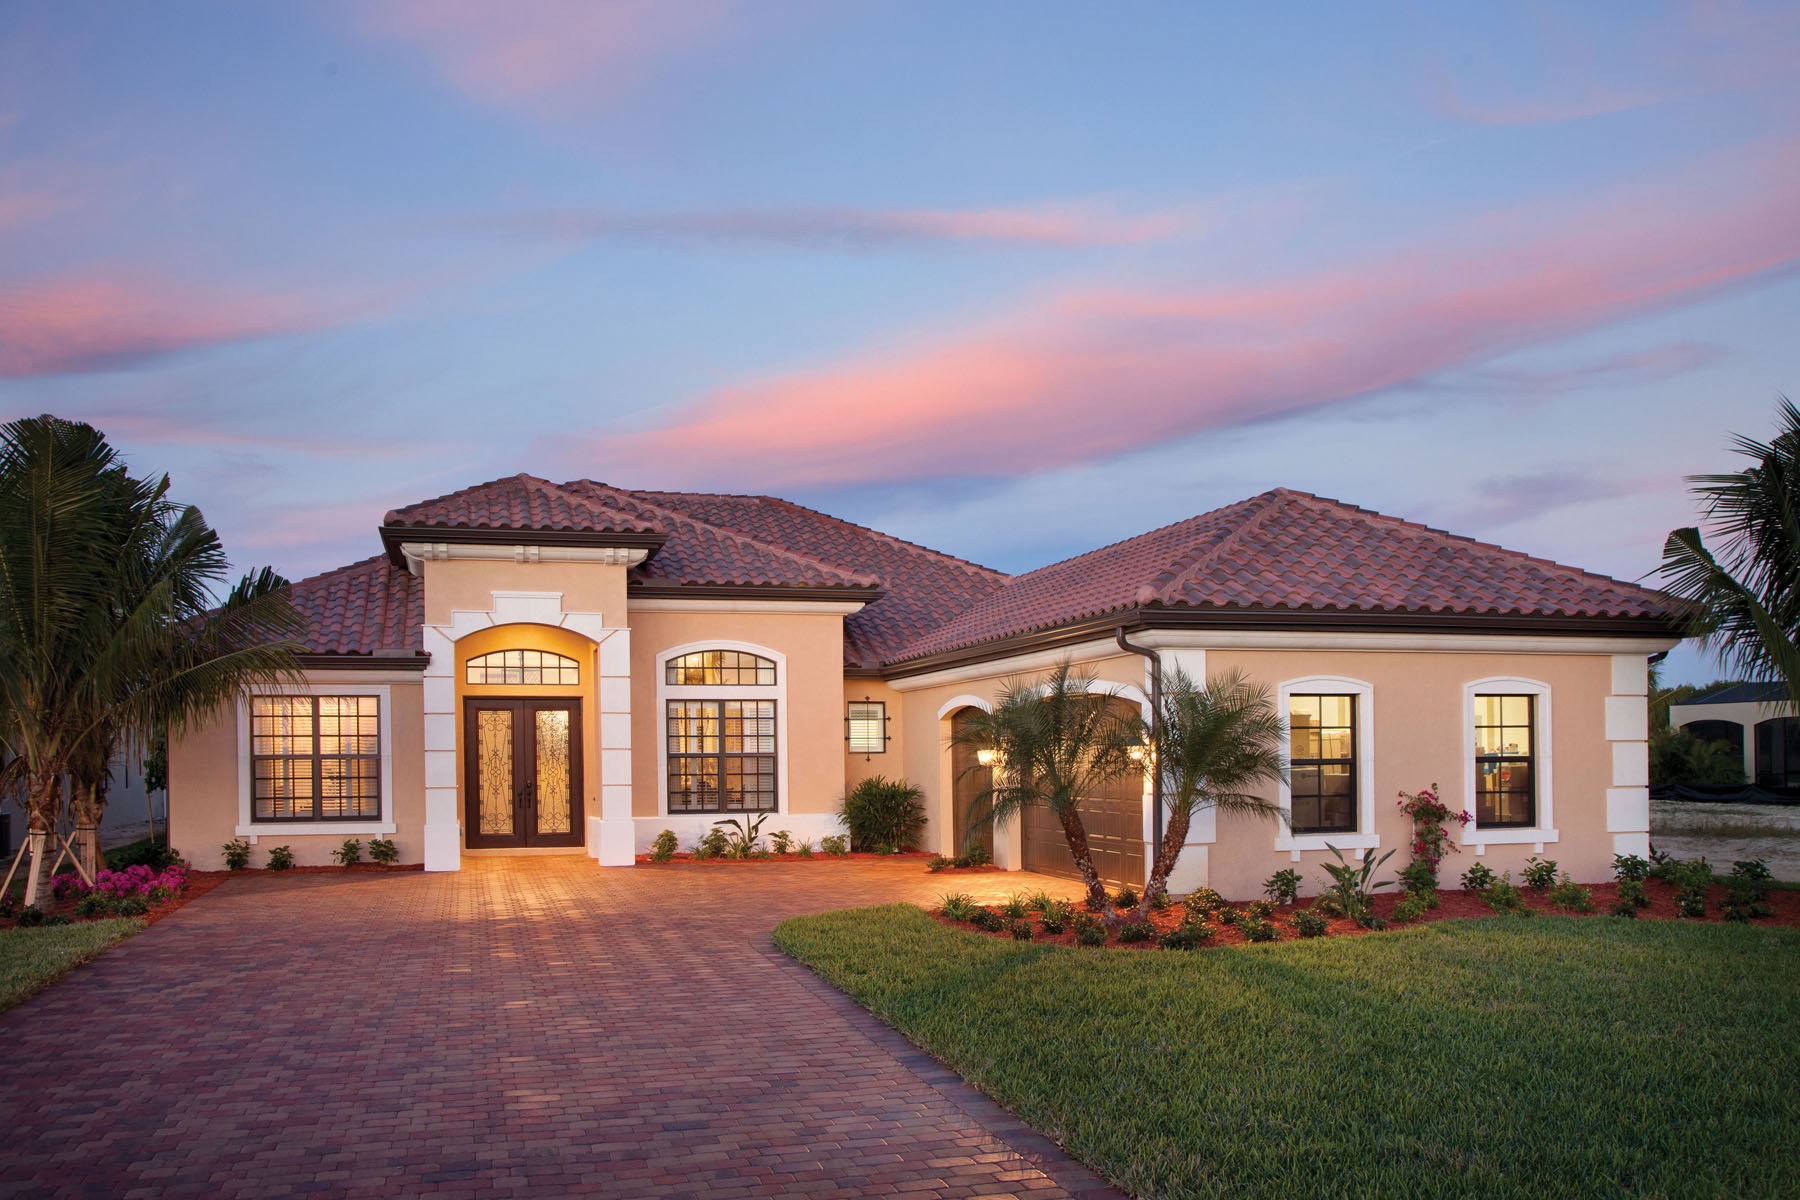 Small Ranch Style Home Plans Bougainvillea Luxury Model Home Completed At Runaway Bay